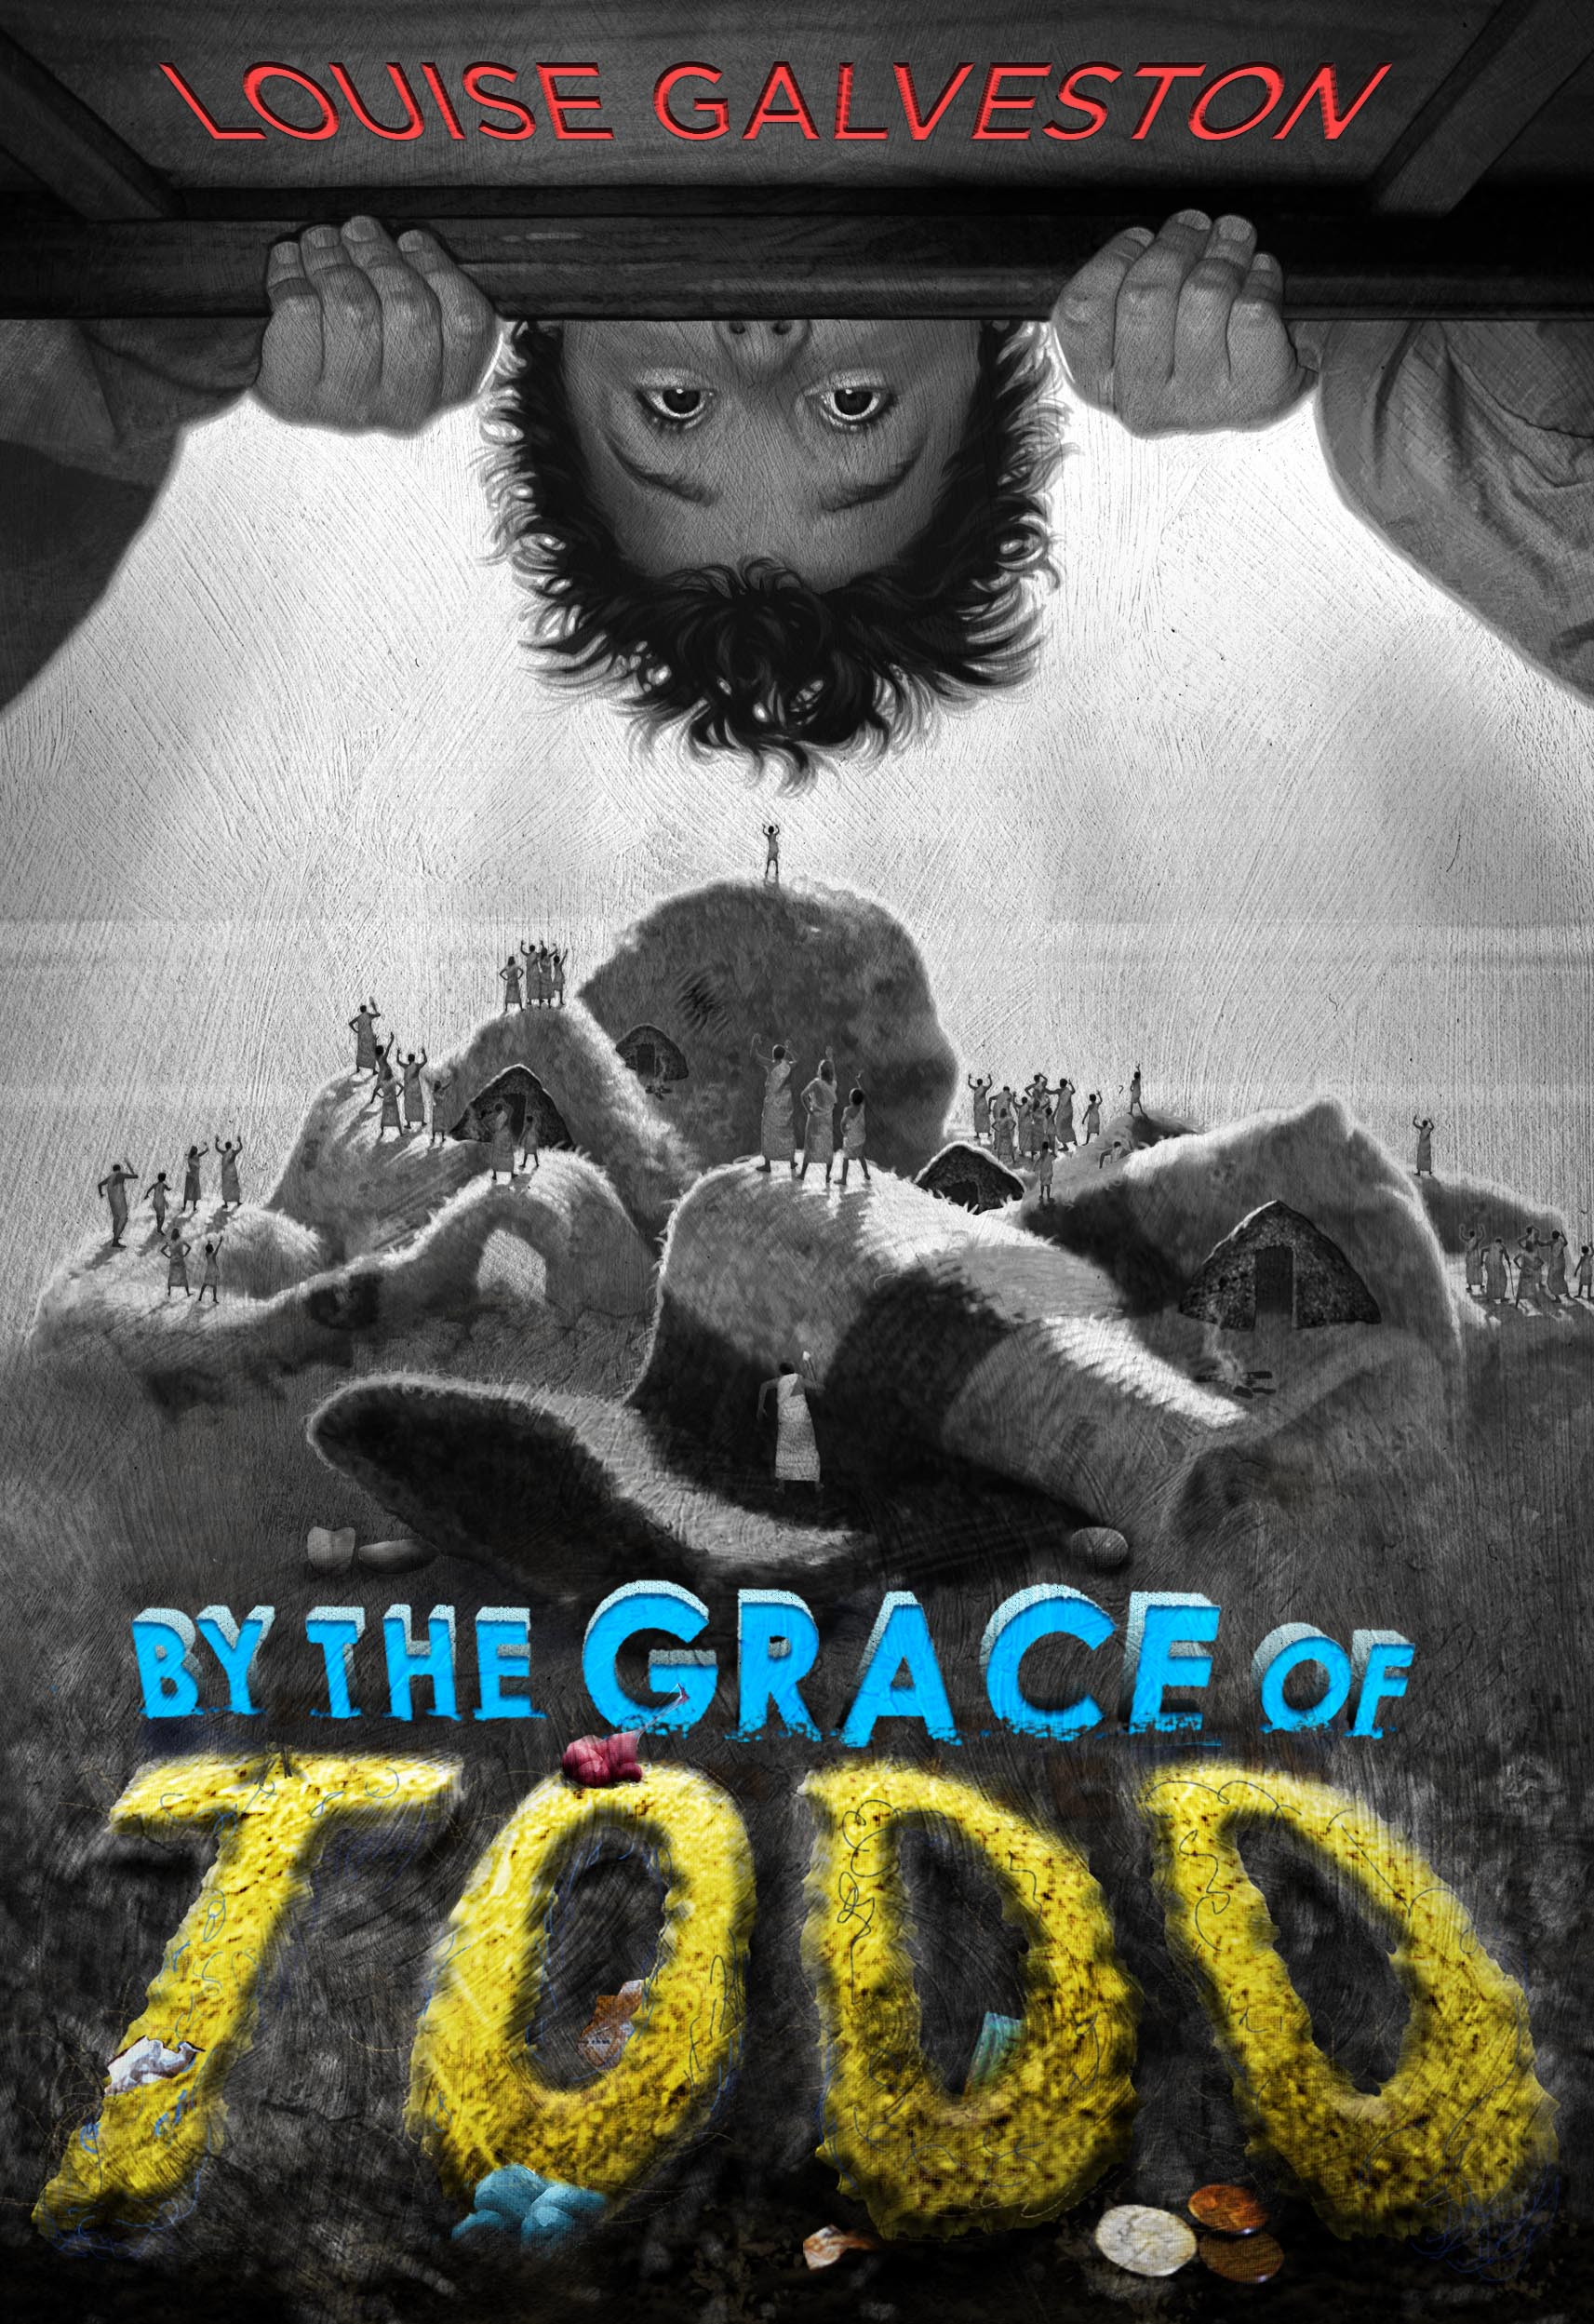 By the Grace of Todd - Interview and Giveaway